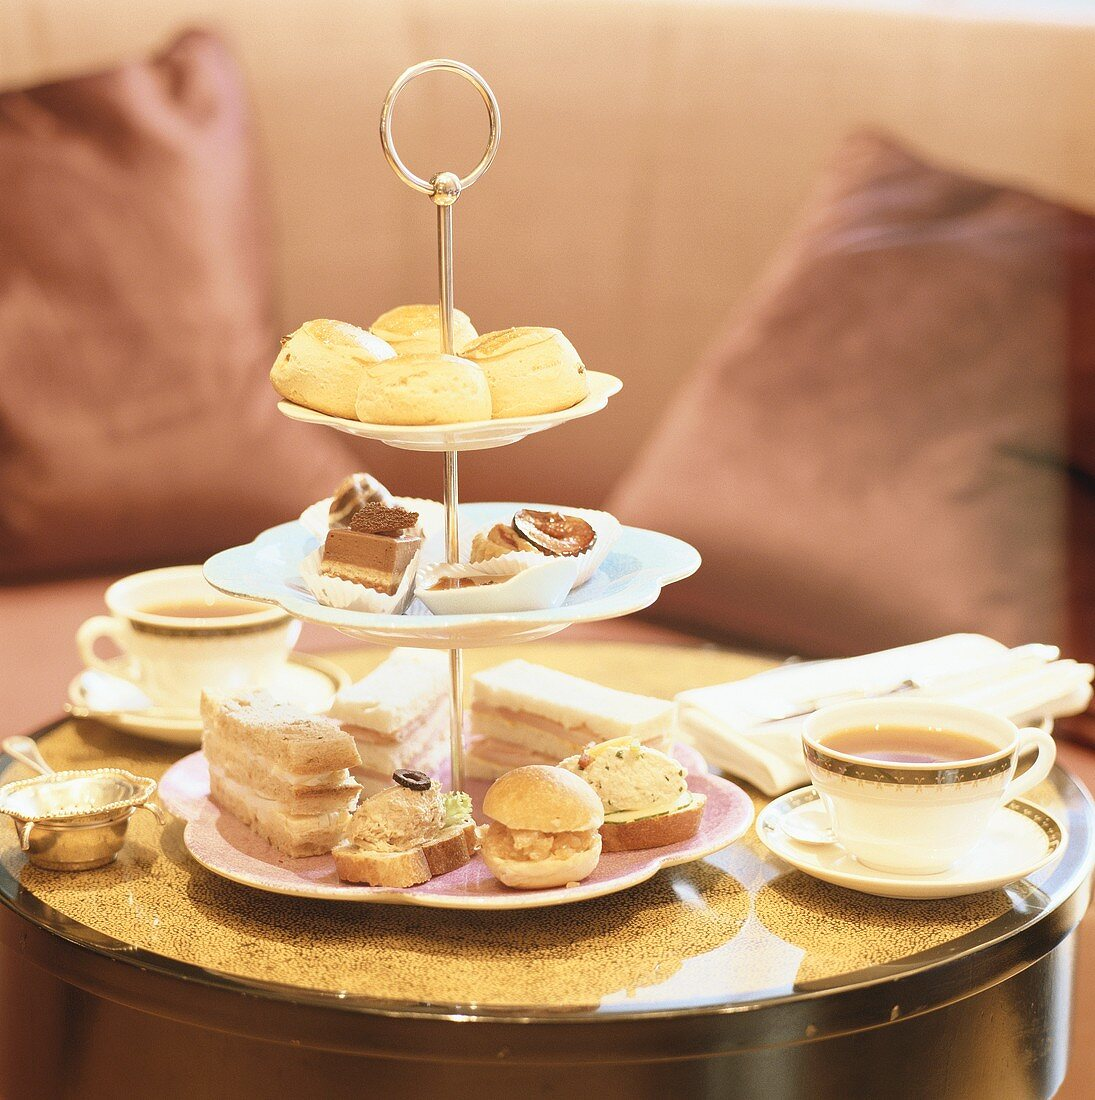 Tiered stand with cakes and snacks to serve with tea